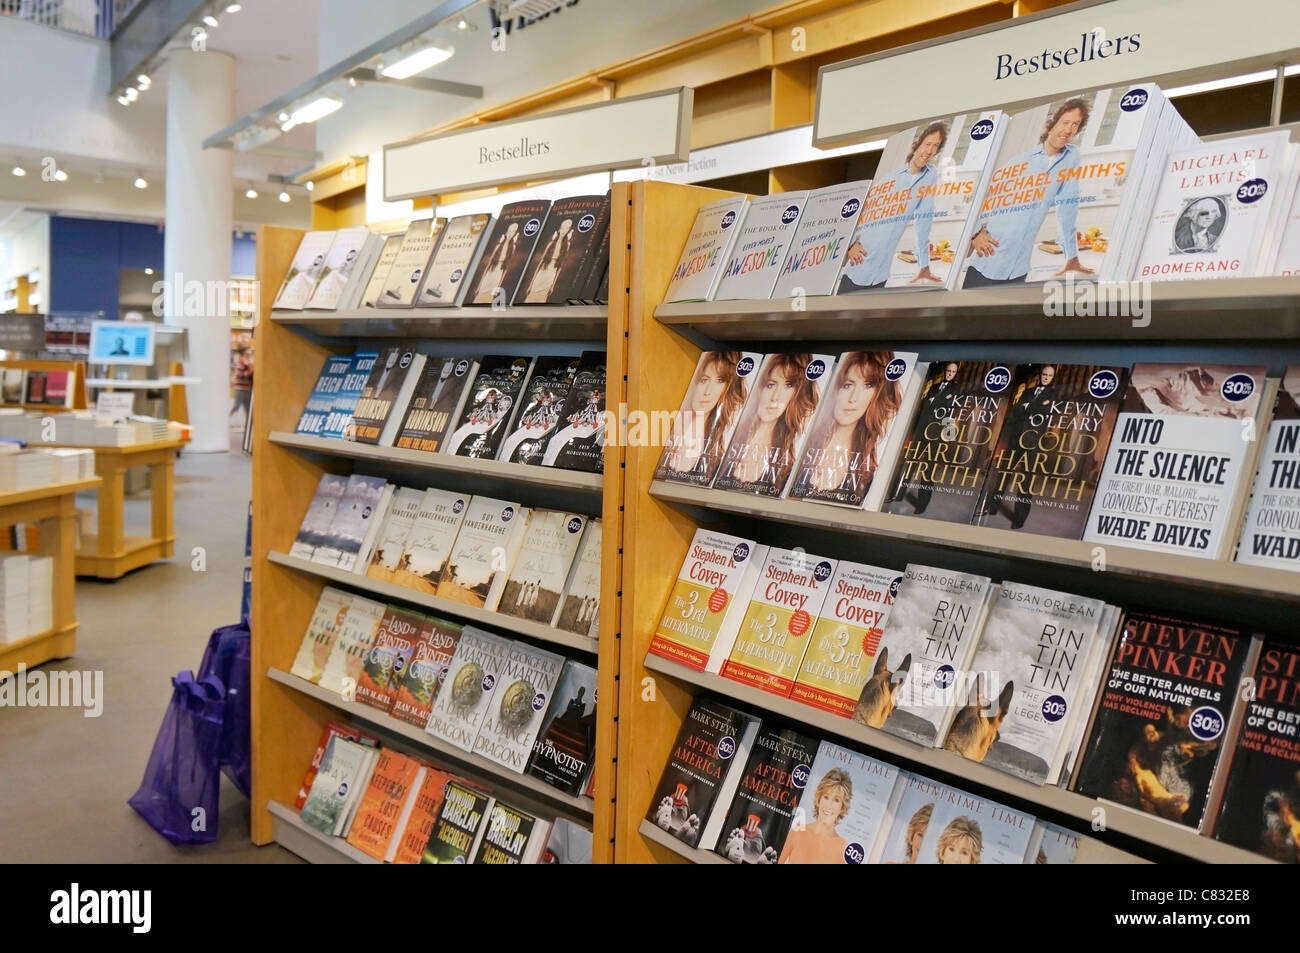 Books on Shelves in Bookstore, Bestsellers of Fall 2011, Michael Smith, Neil Pasricha, Kevin O'Leary - Stock Image